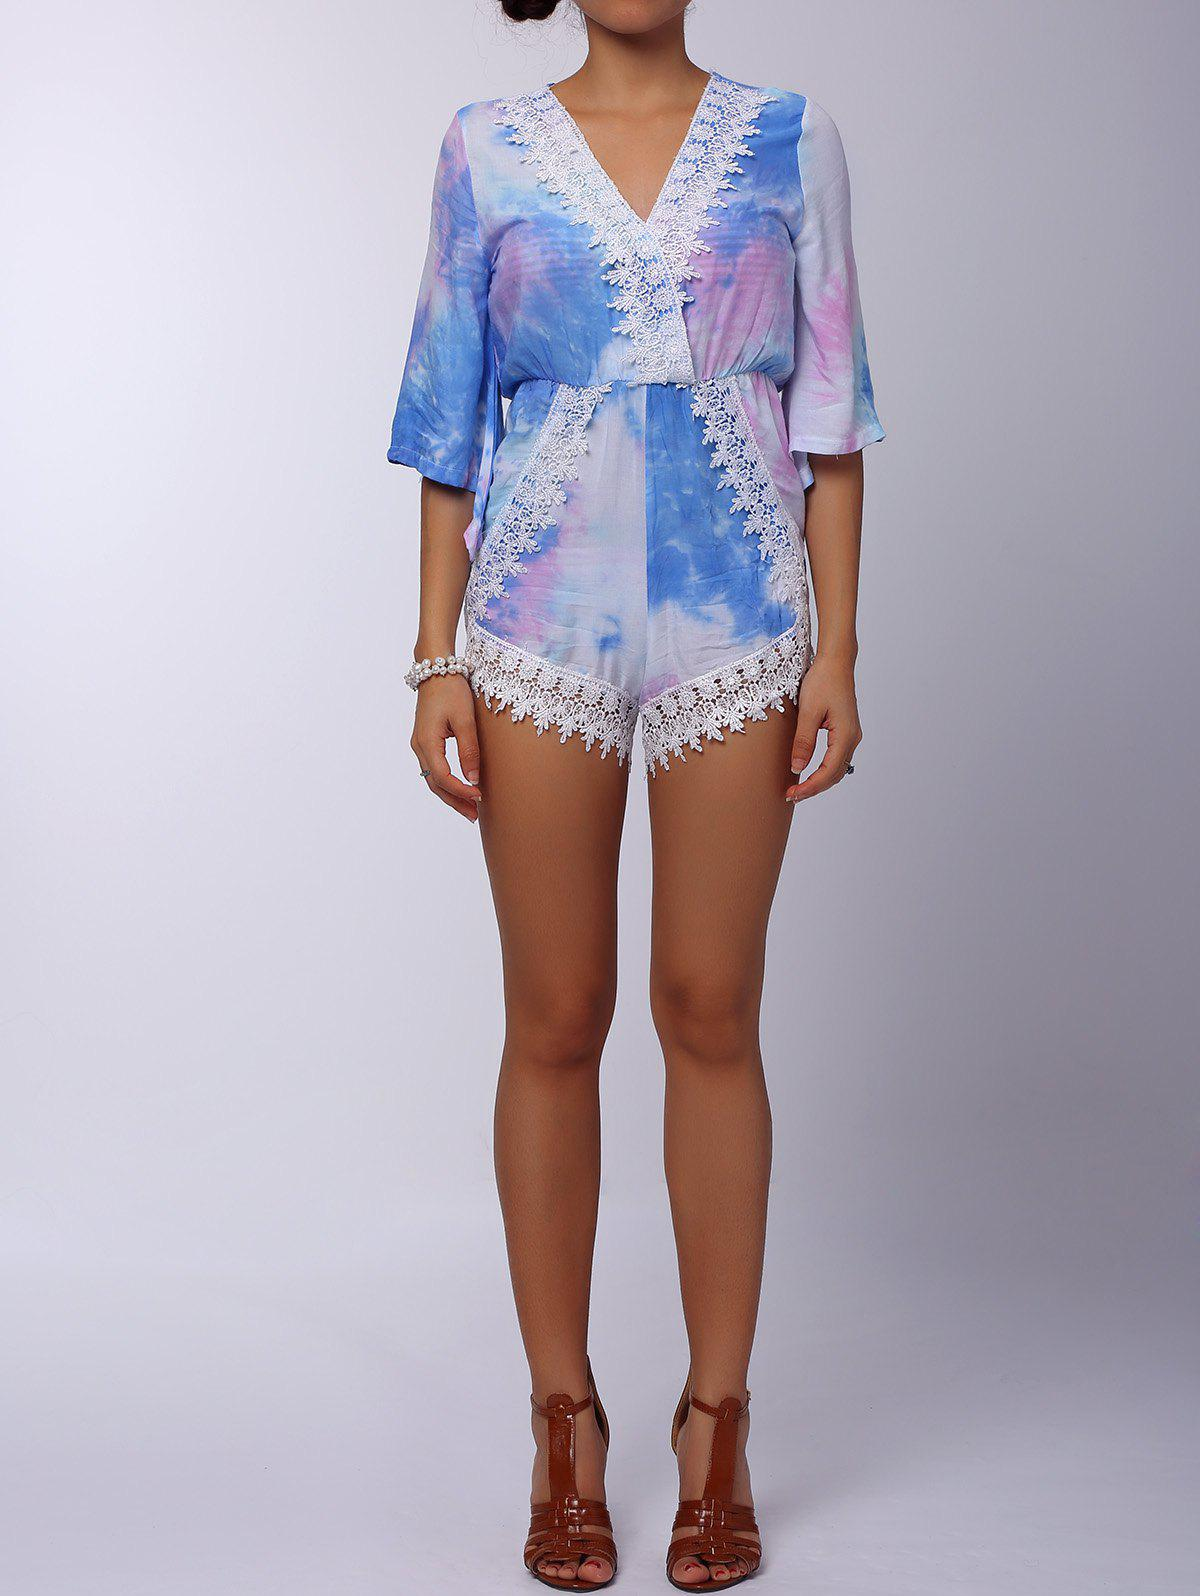 Stylish 3/4 Sleeve Plunging Neck Lace Embellished Printed Women's Romper - COLORFUL S